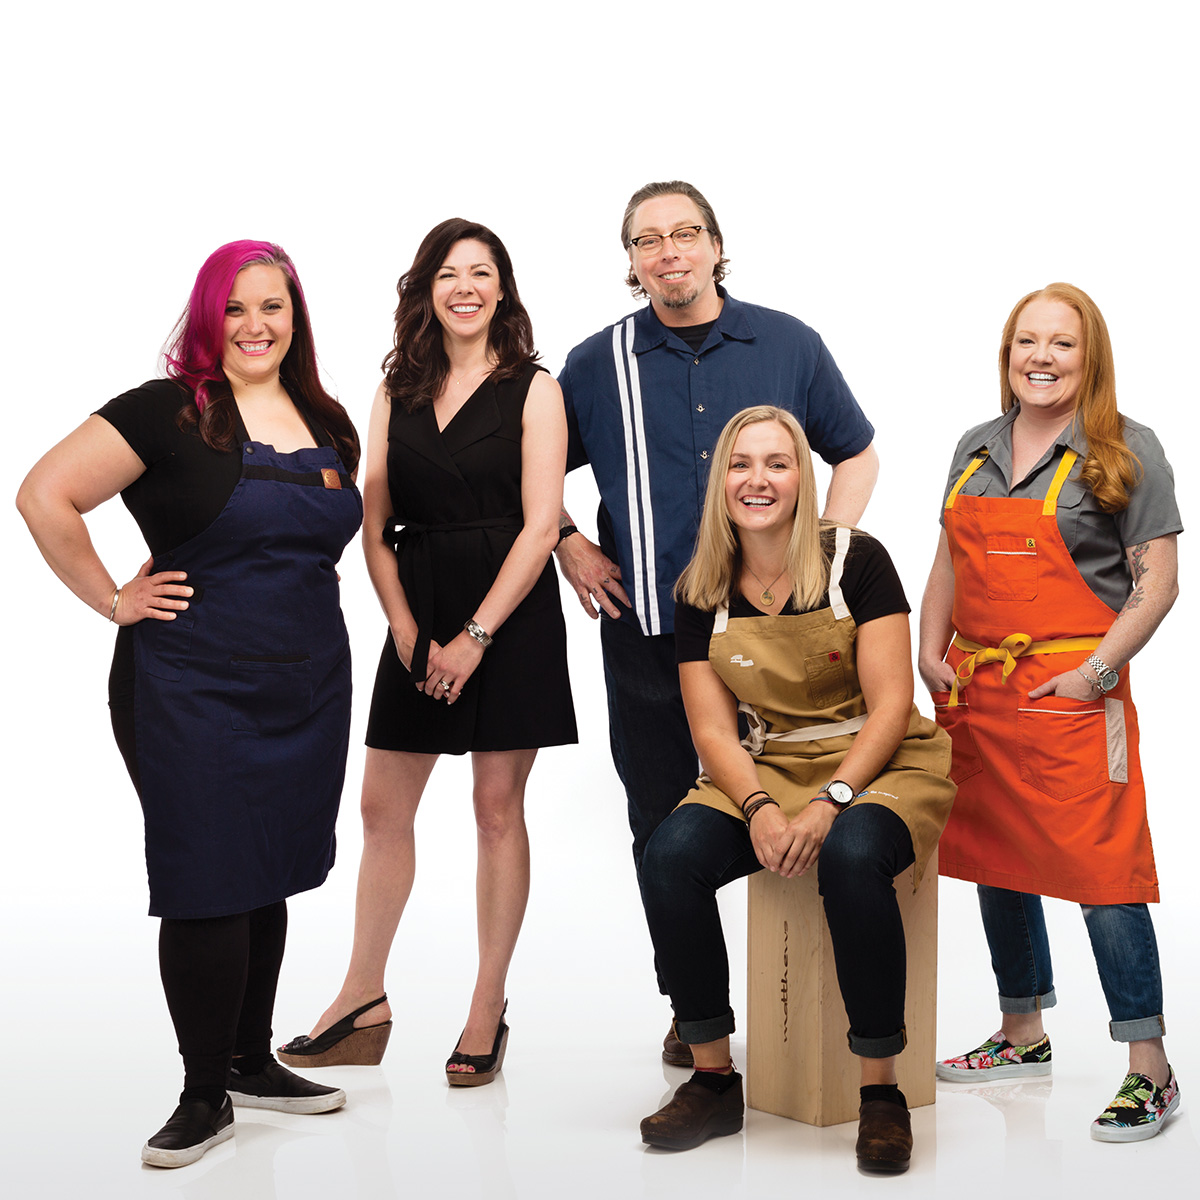 """Meghan Thompson (seated) with fellow 2016 Best of Boston honorees (from left) Karen Akunowicz, Katie Gilarde, Todd Maul, and Tiffani Faison. / Photograph by Jason Grow, styling by Laura Dillon/Team for """"Best of Boston 2016"""""""